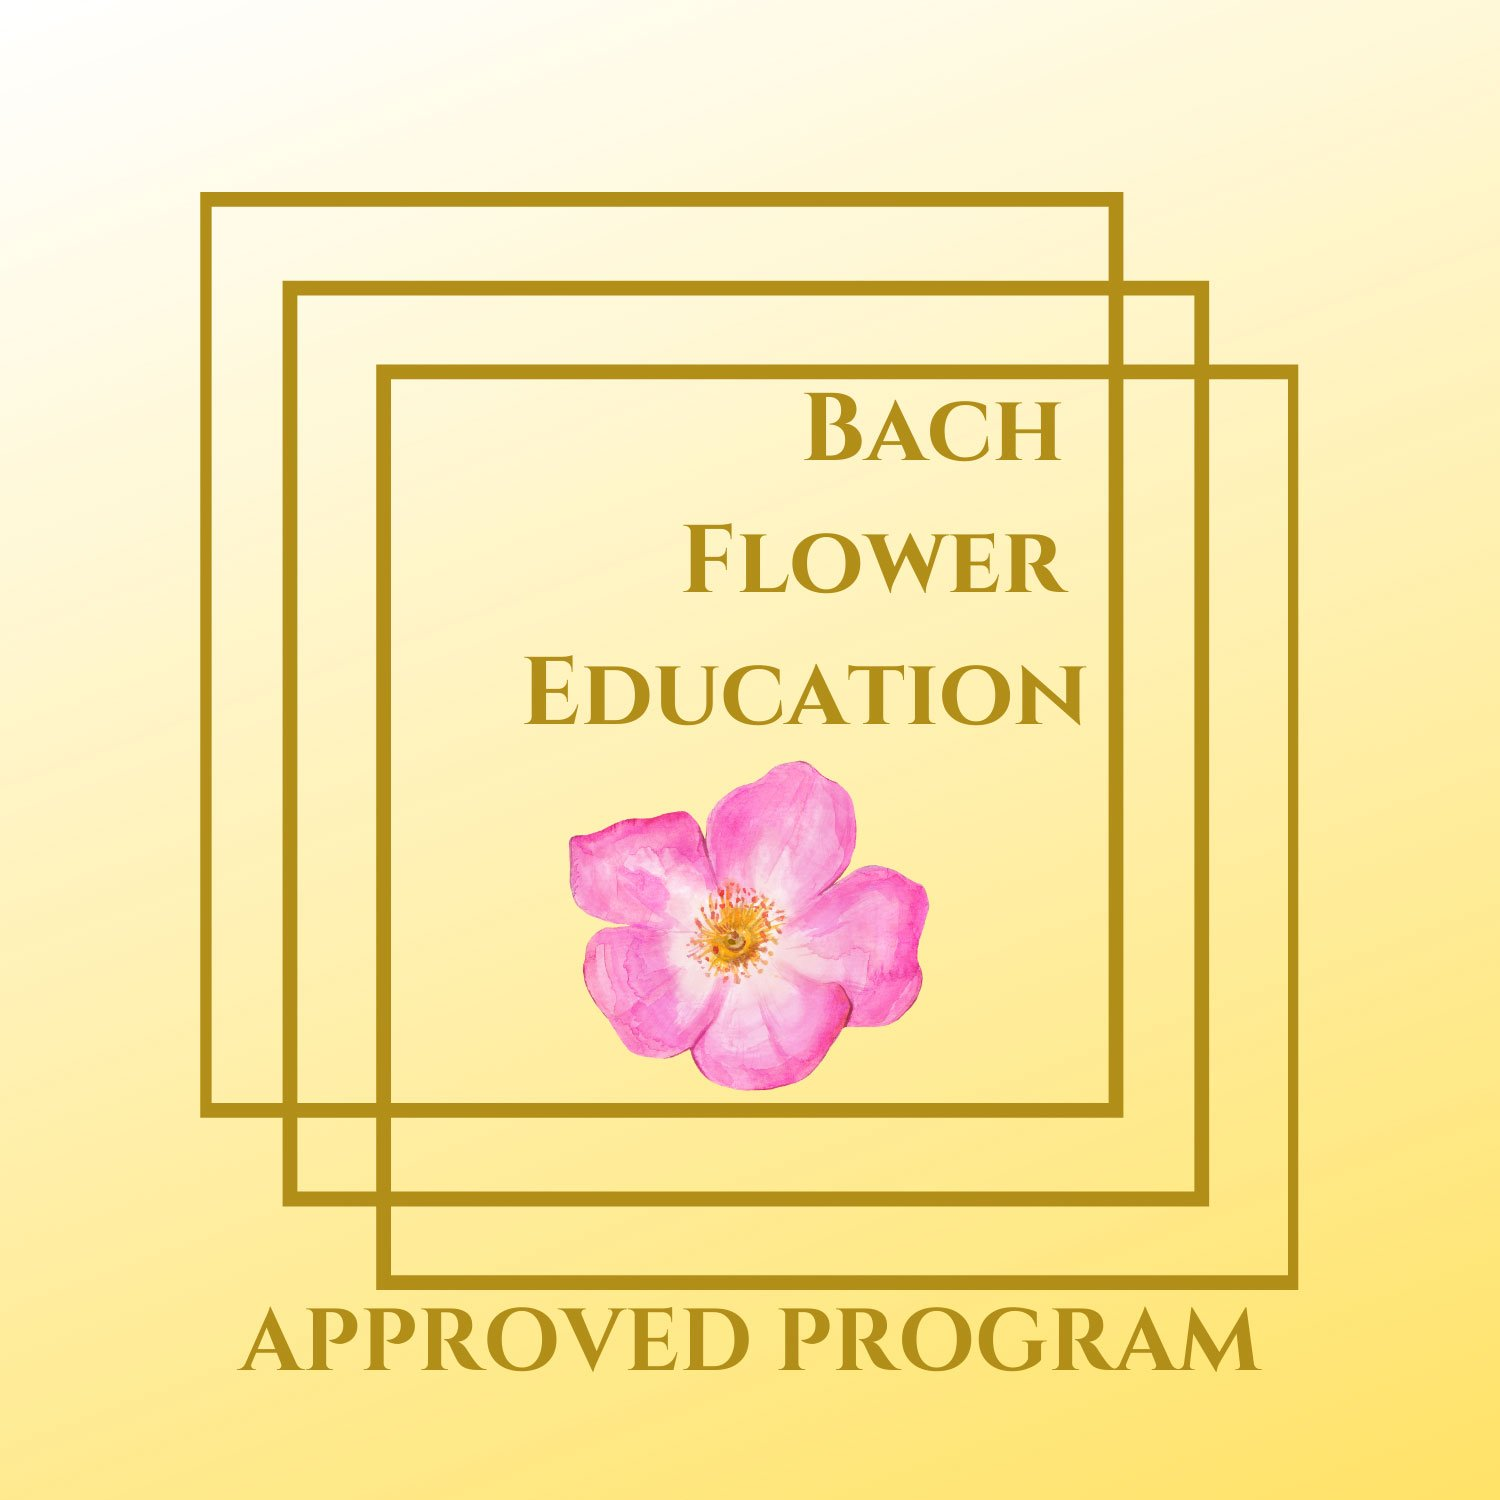 Bach Flower Education